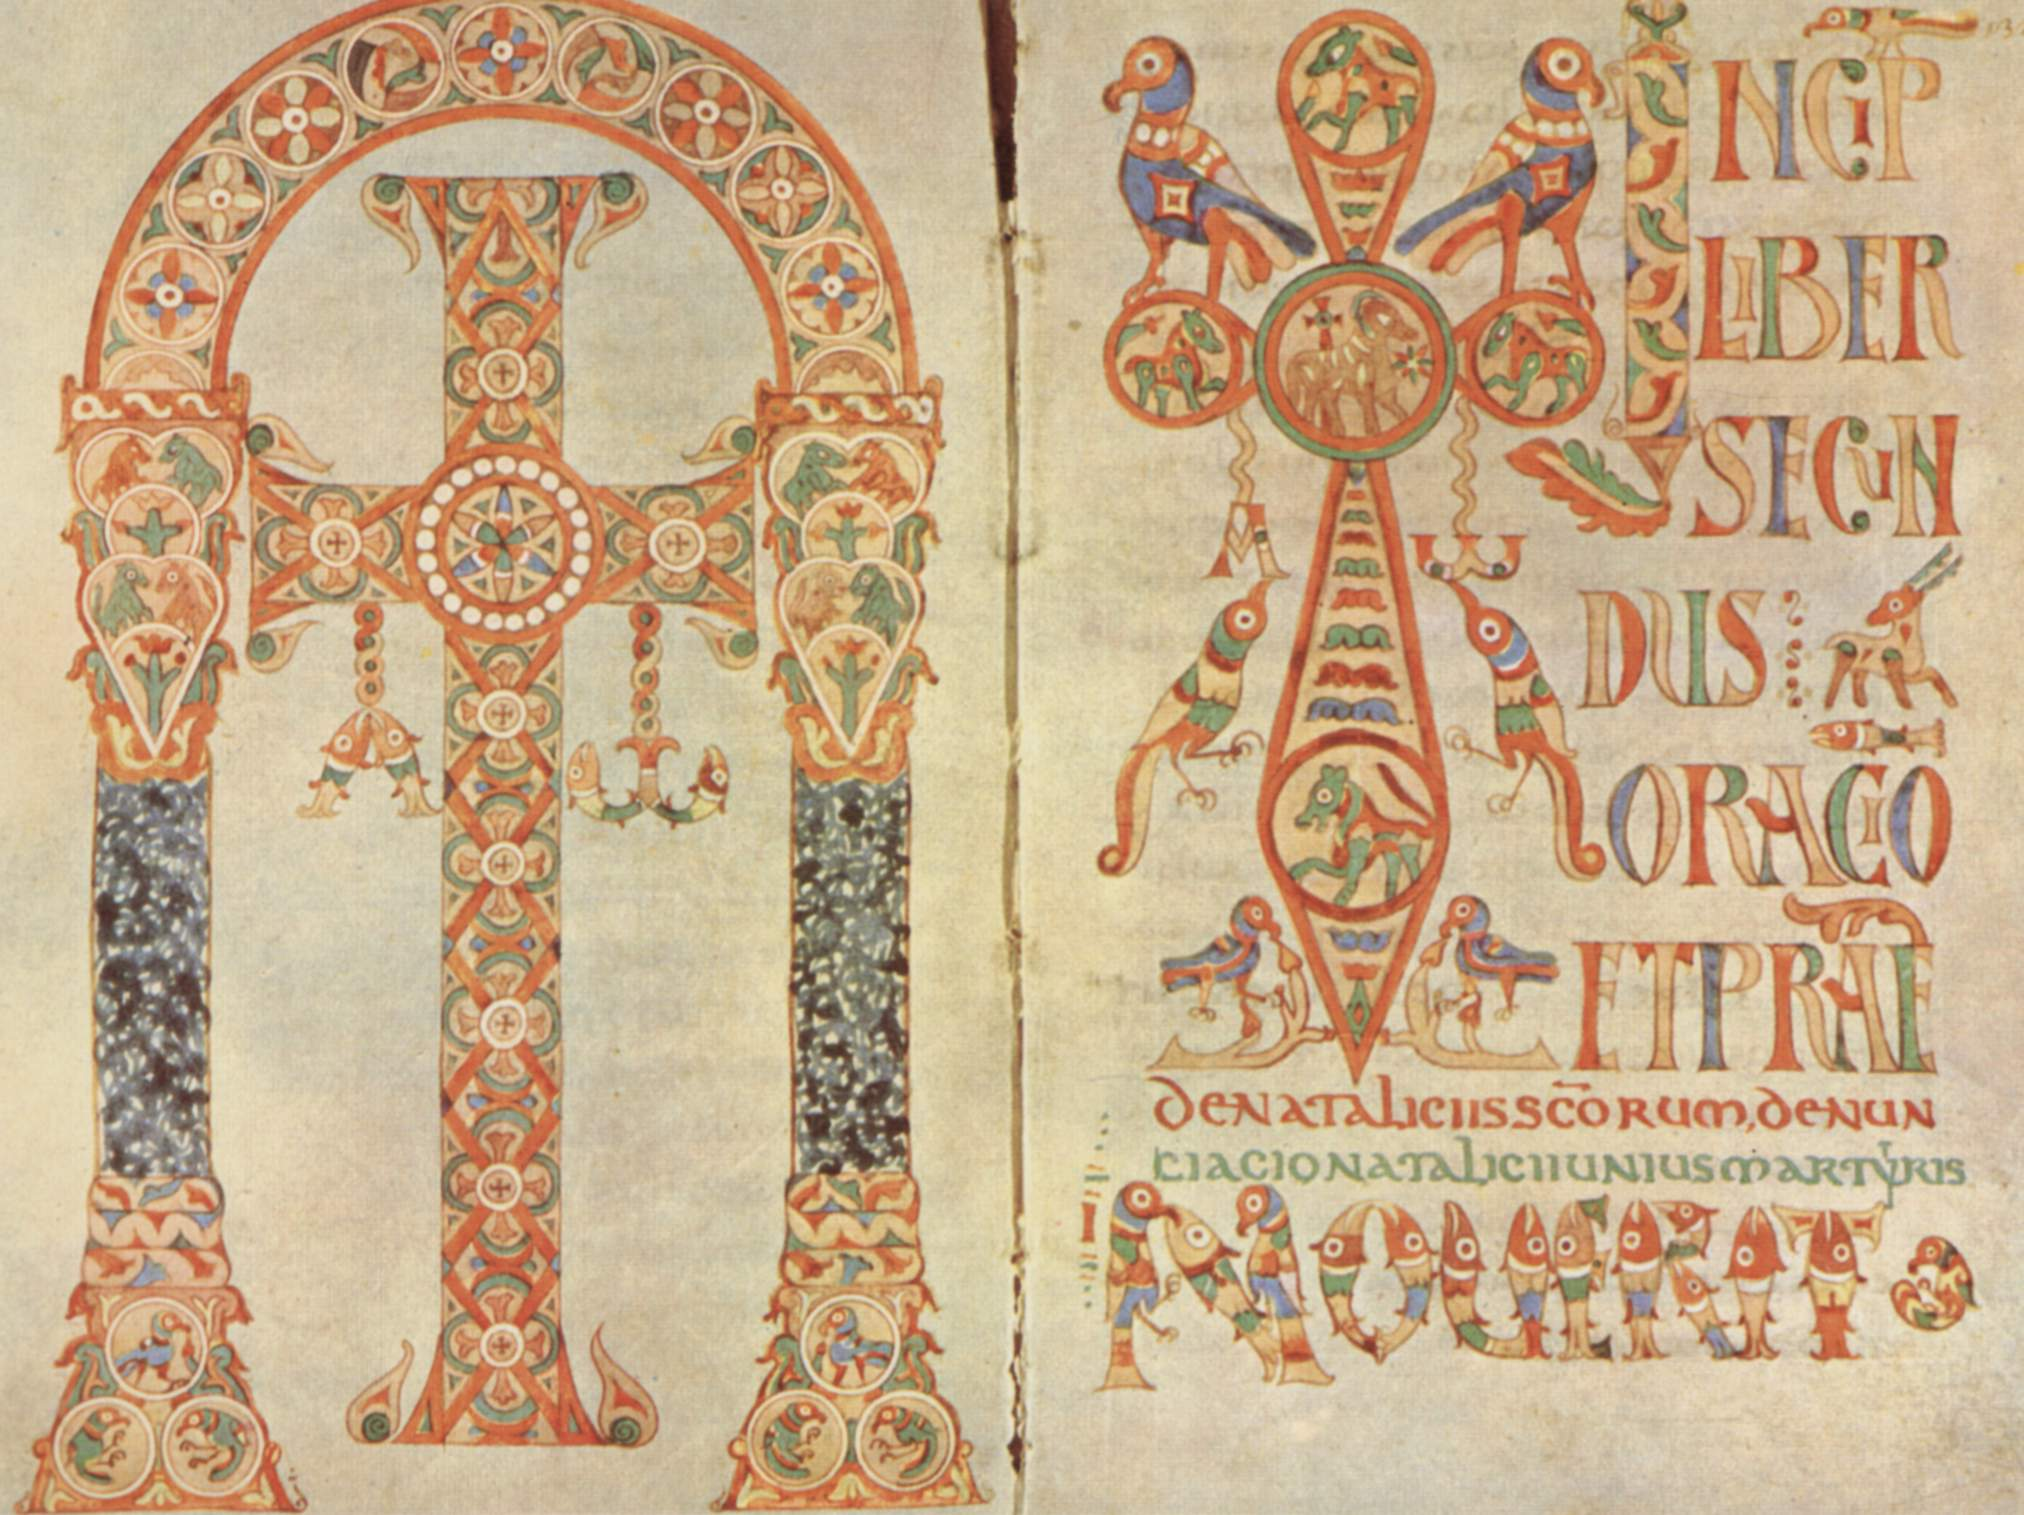 A page from an illustrated manuscript of the Gelasian Sacramentary